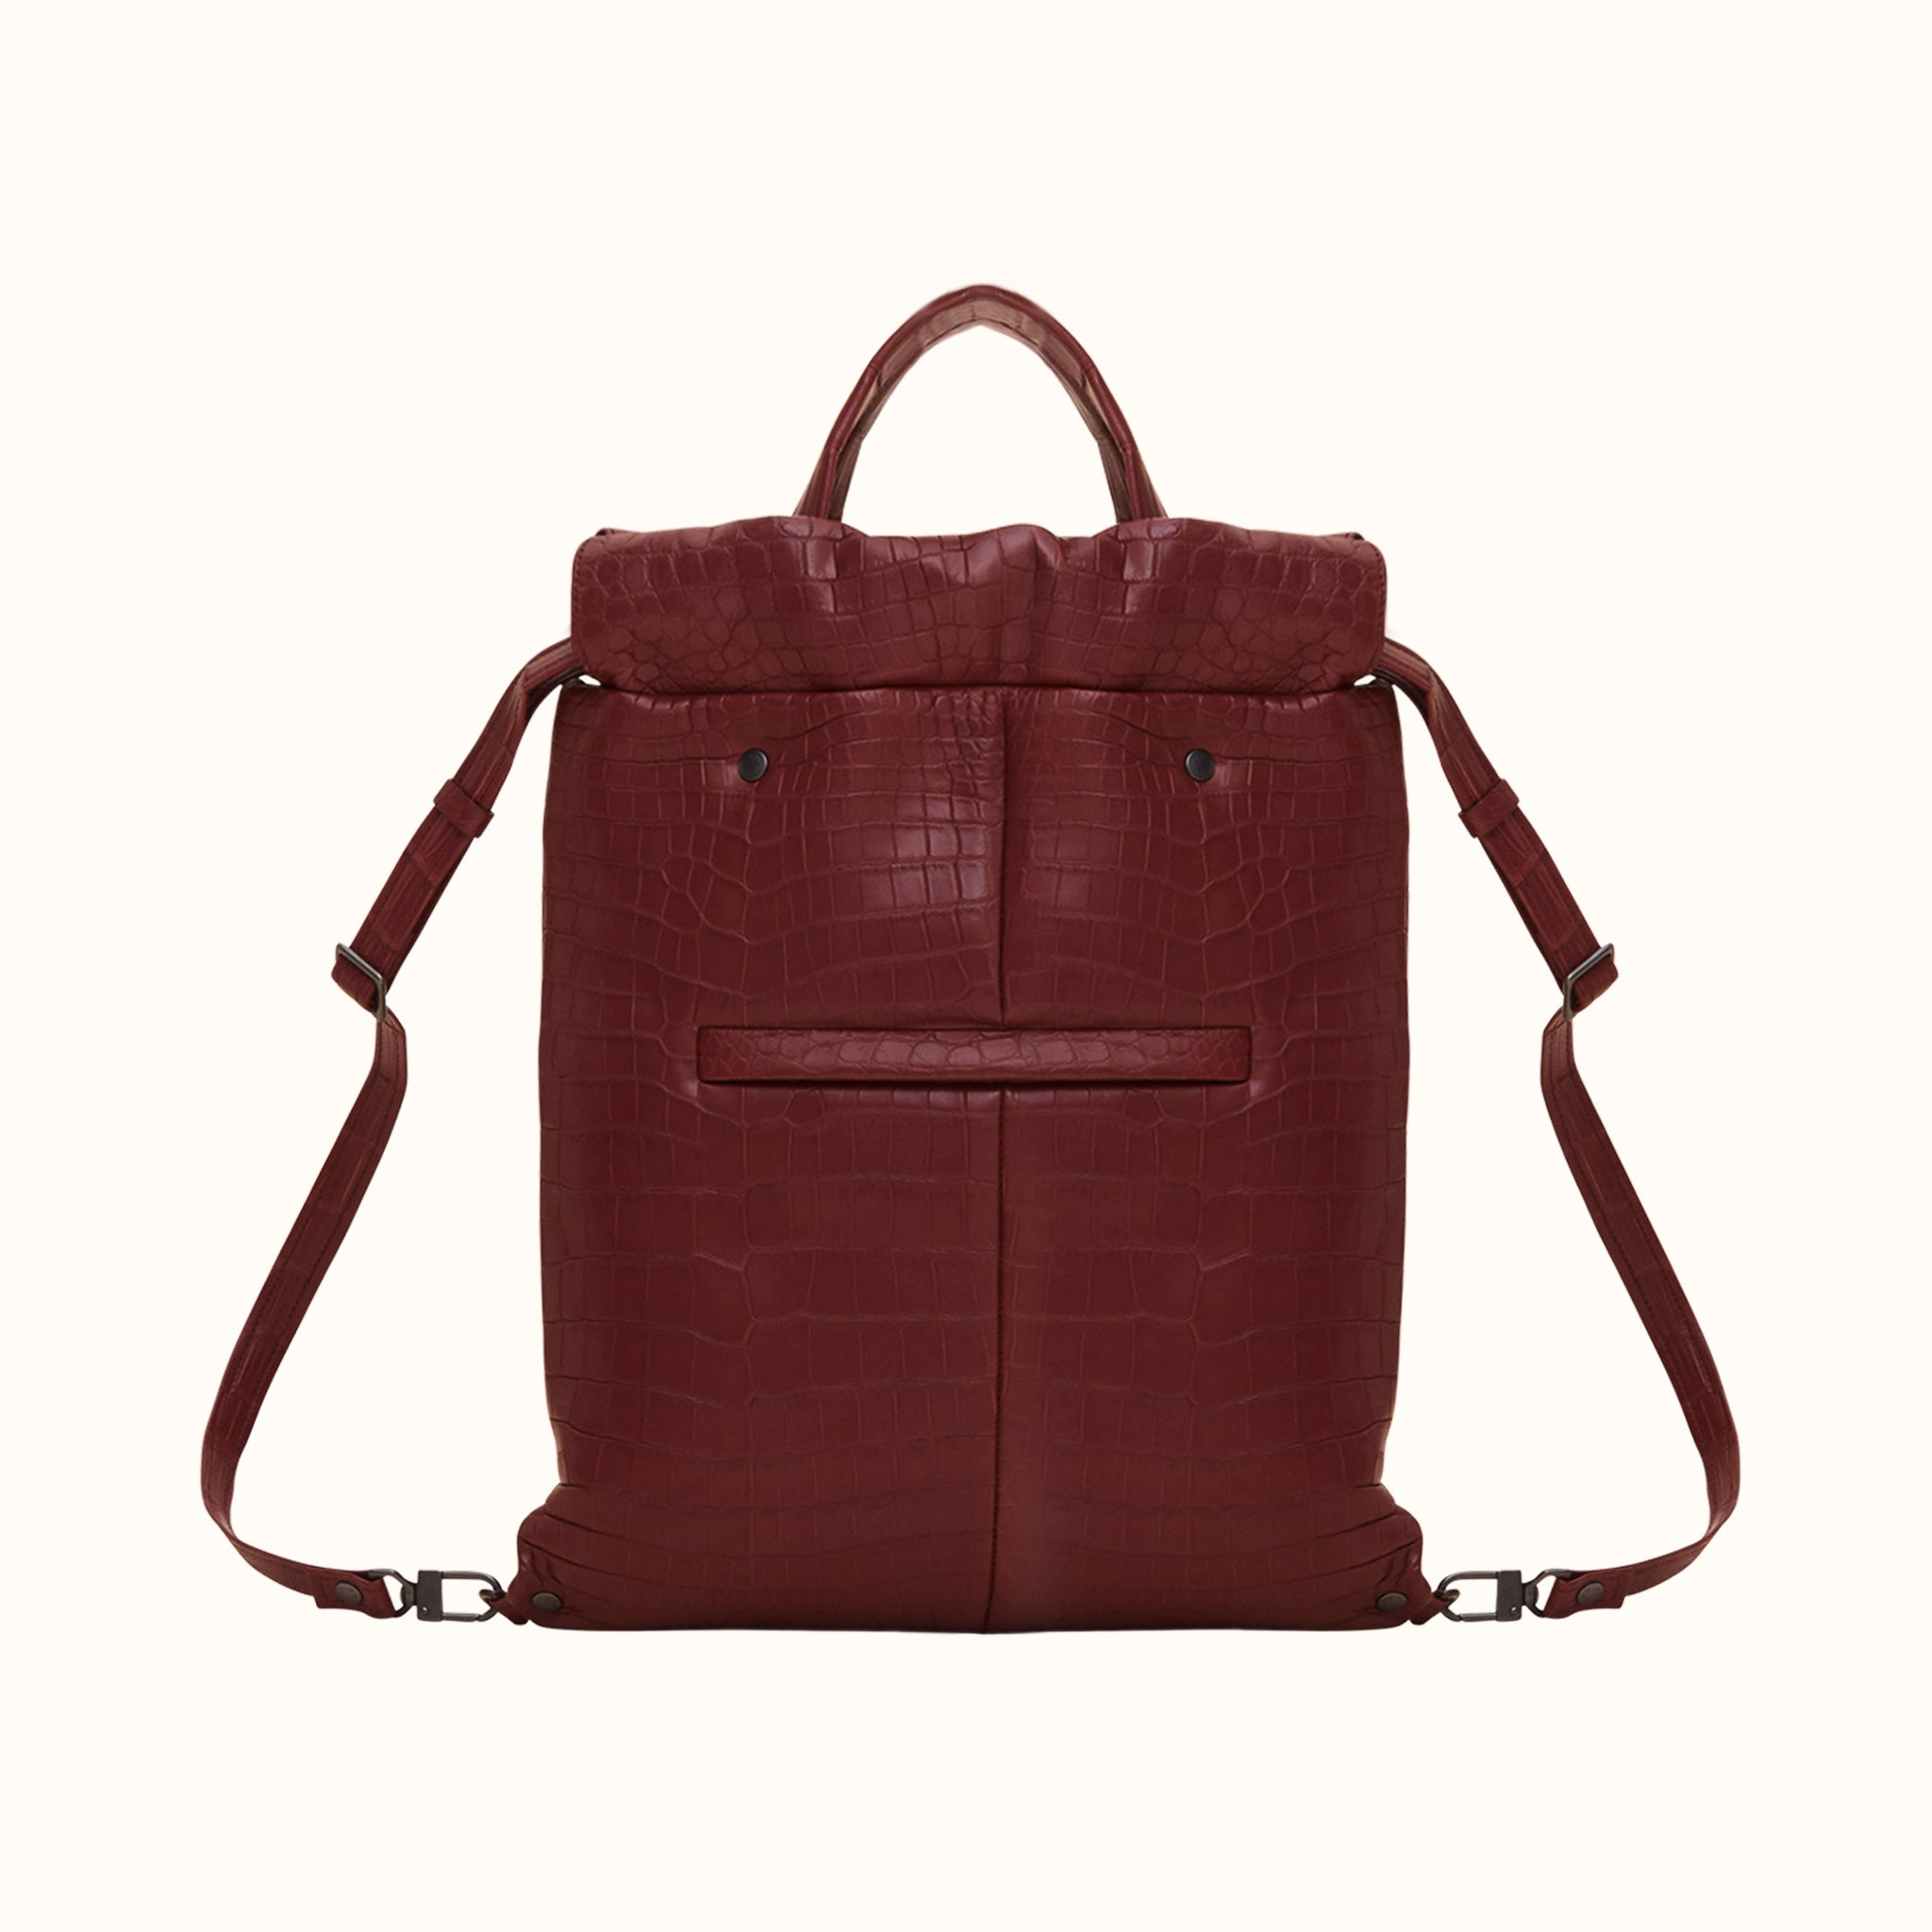 Drawstring Tote [Bordeaux]